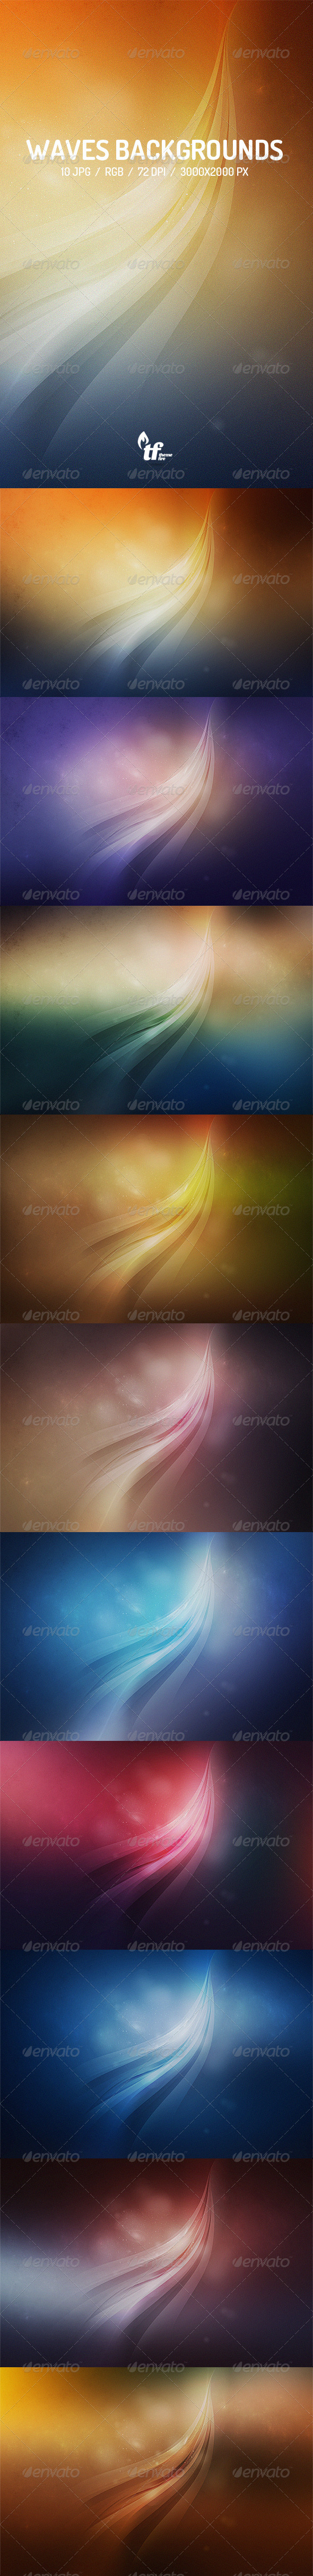 GraphicRiver 10 Abstract Waves Backgrounds 7509063